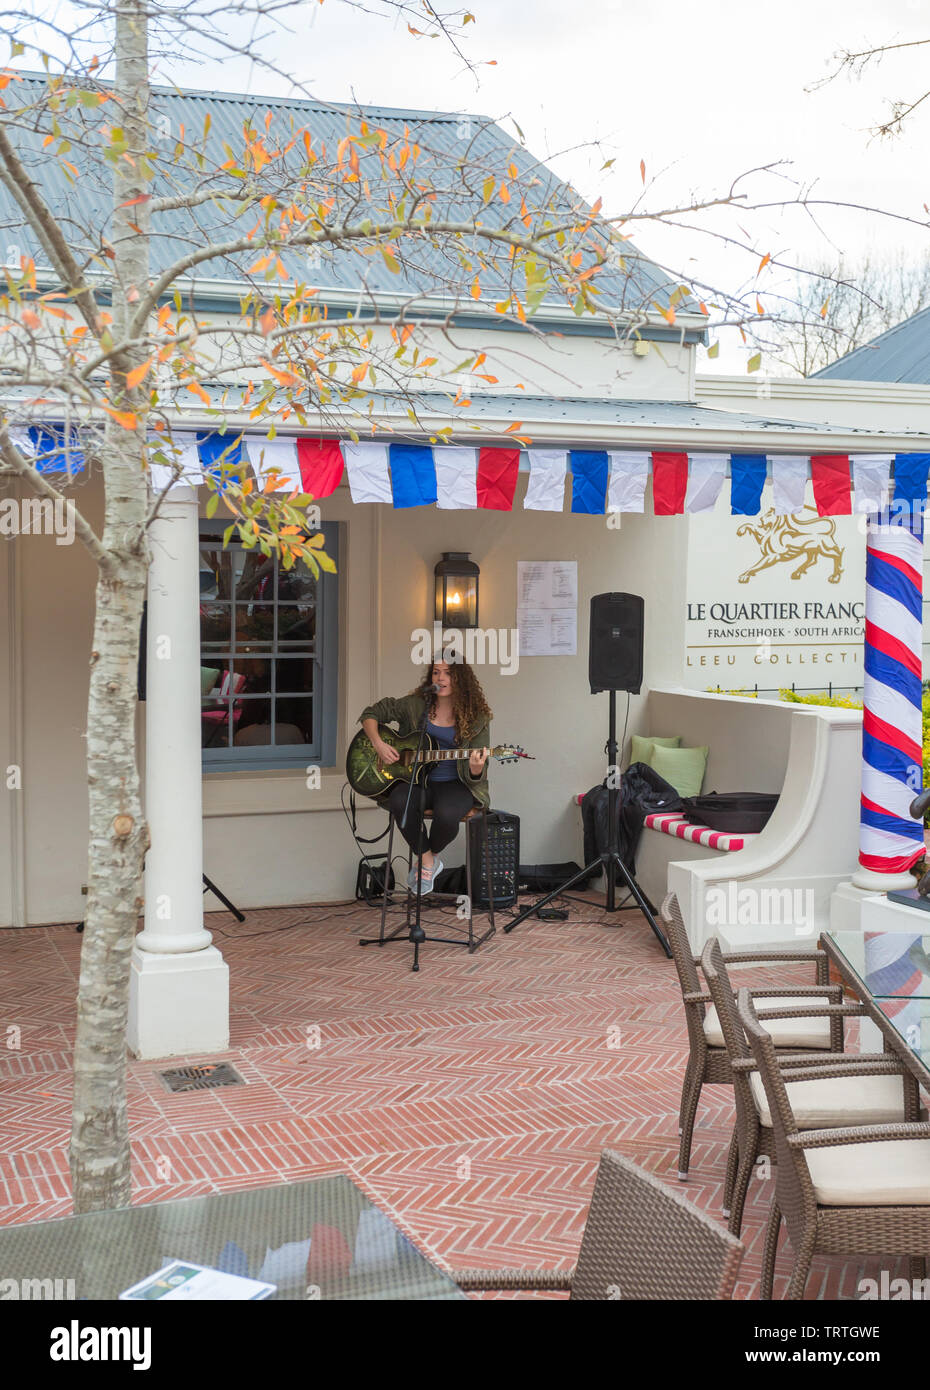 female singer and musician playing a guitar in a courtyard of a pub on Bastille day in Franschhoek, Cape Winelands, South Africa - Stock Image